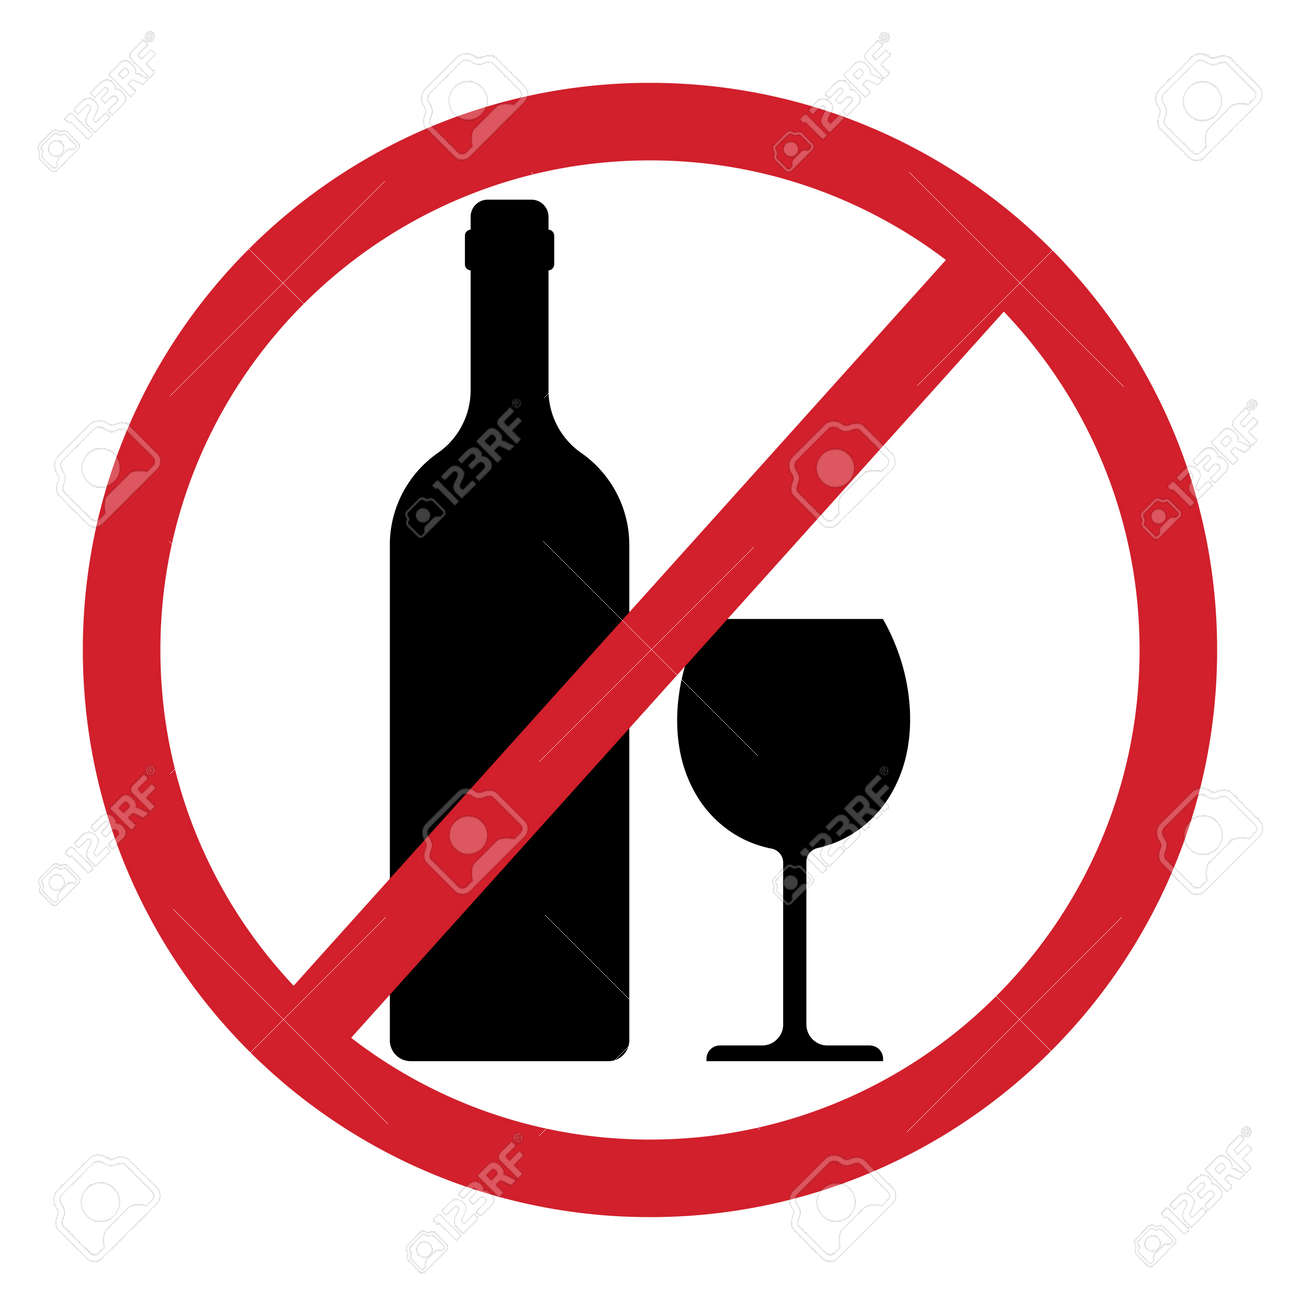 No alcohol sign isolated on white background. Vector illustration - 166028542